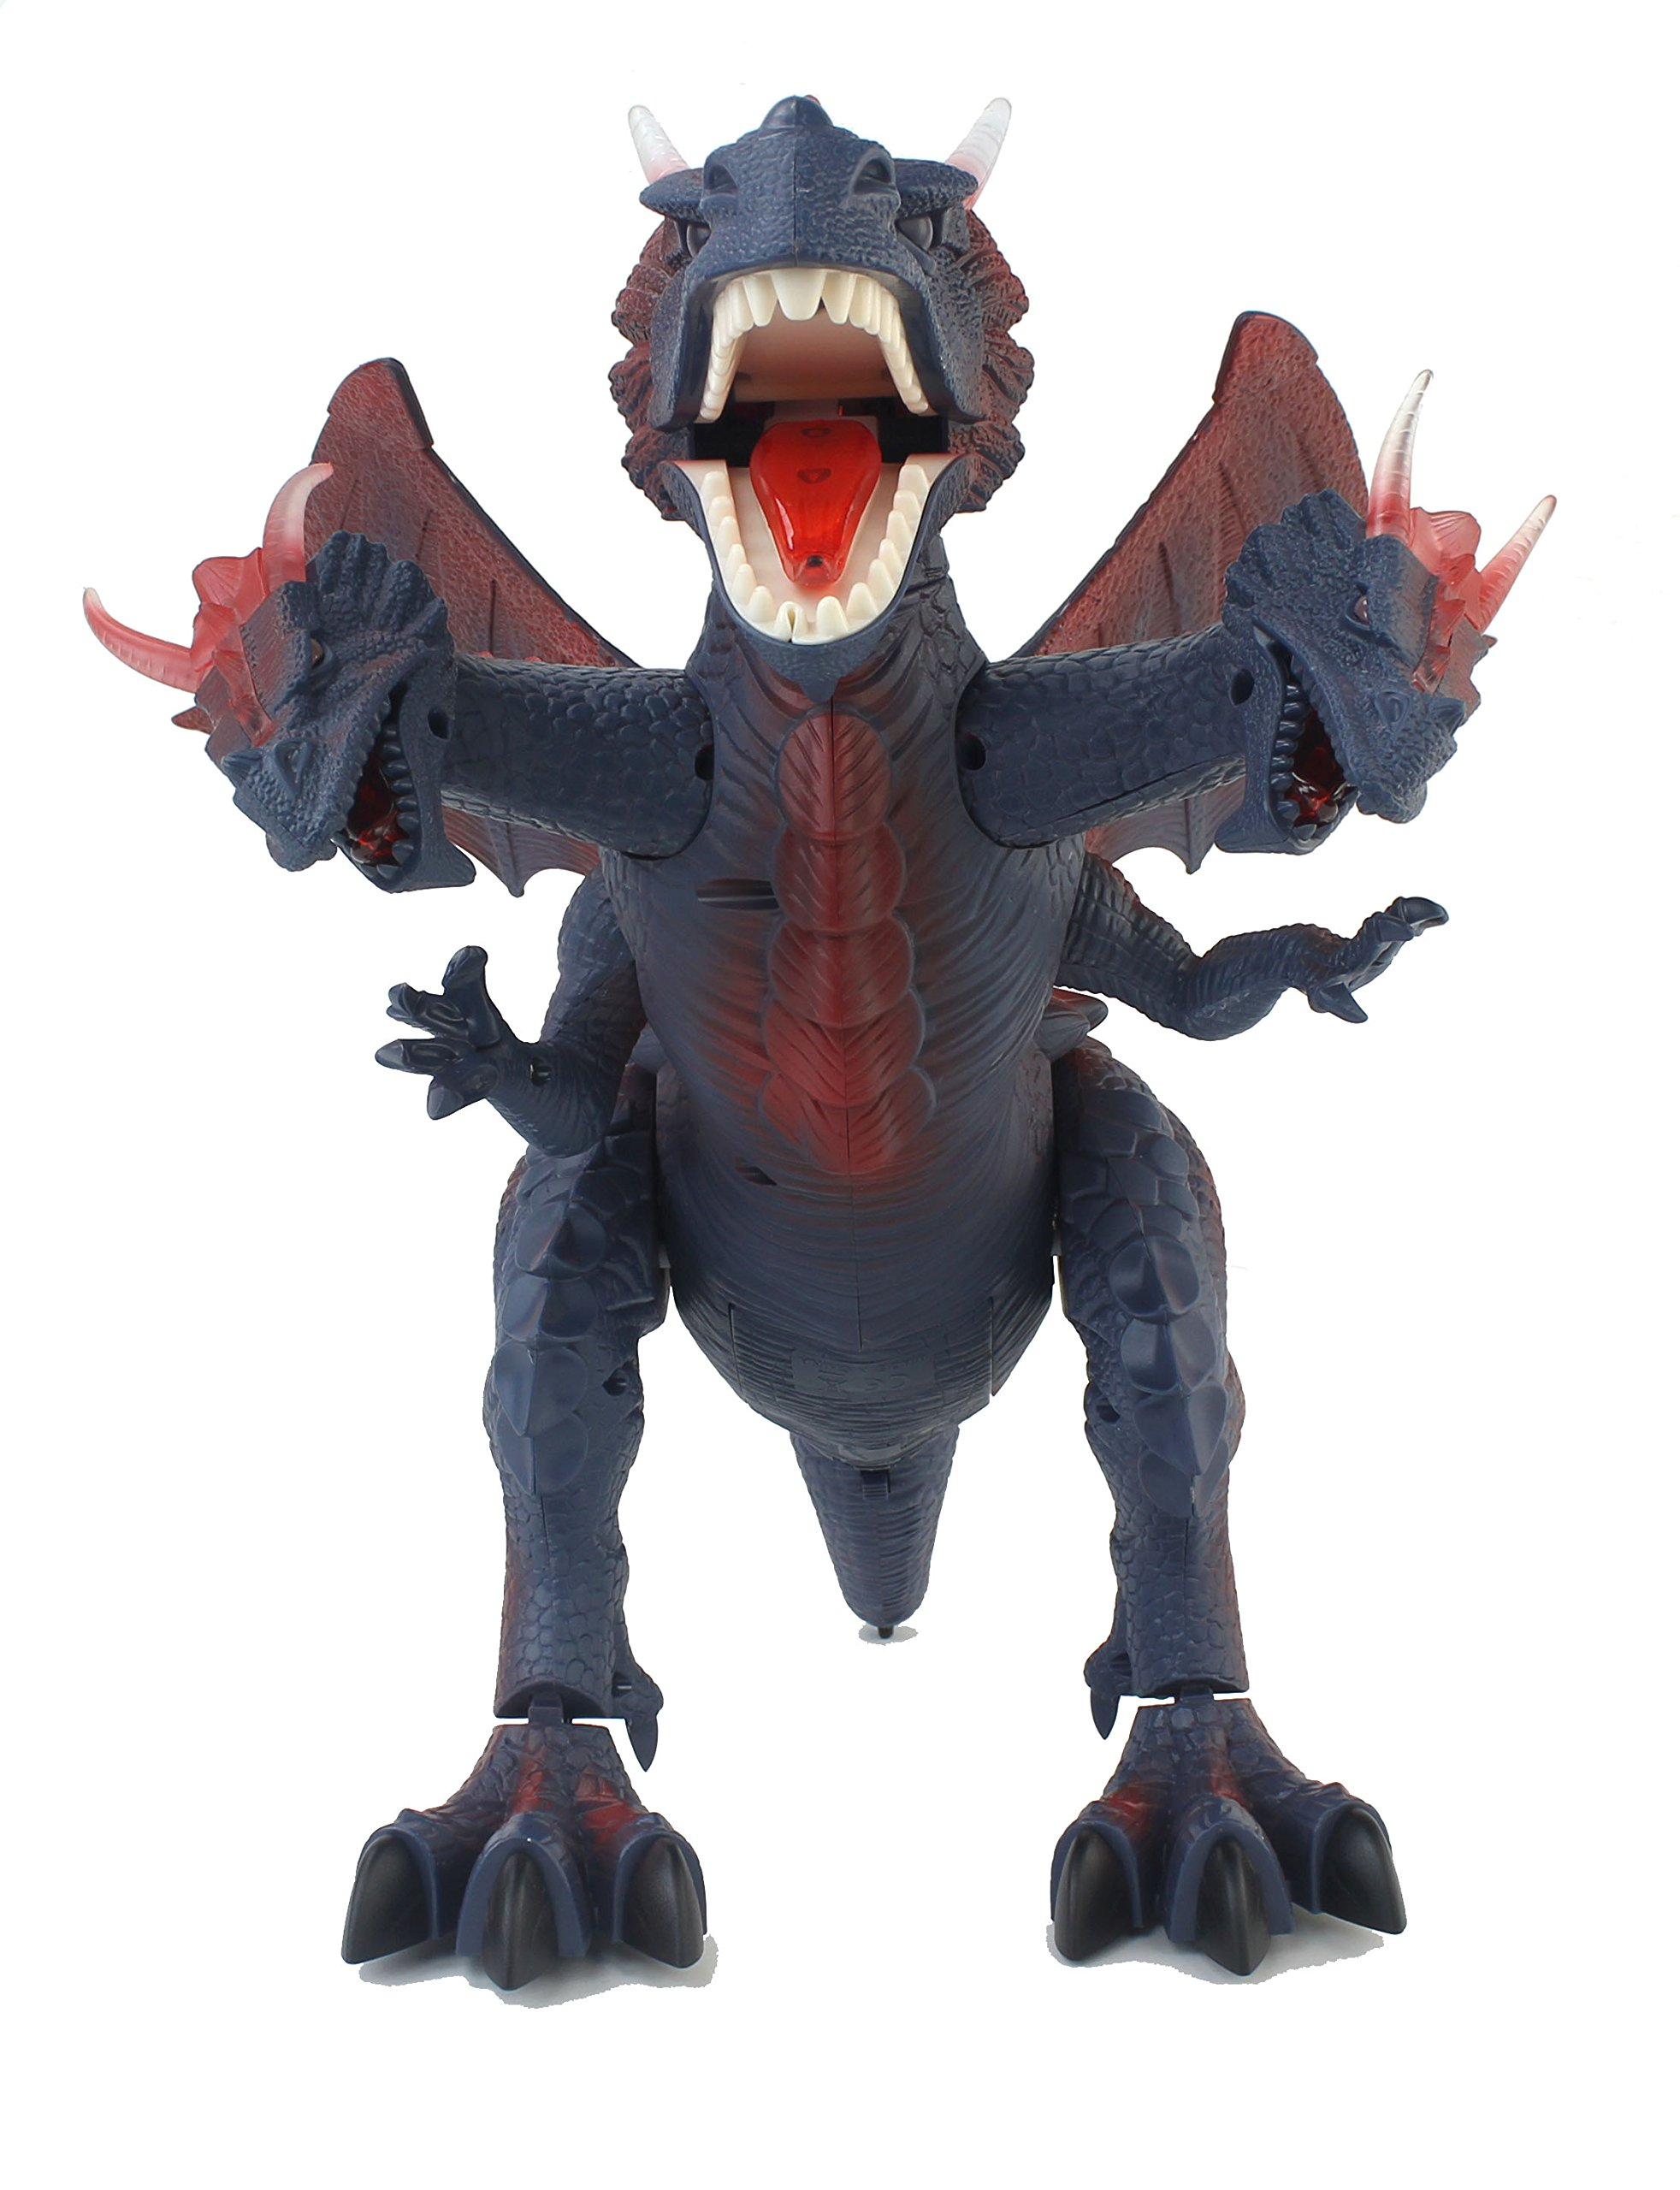 The New World of Dinosaurs Battery Operated Remote Control Toy RC Three Headed Dragon w/ Lights, Sounds, Walking/Wing/Mouth Action, & Flashlight Remote Contro by Velocity Toys (Image #2)